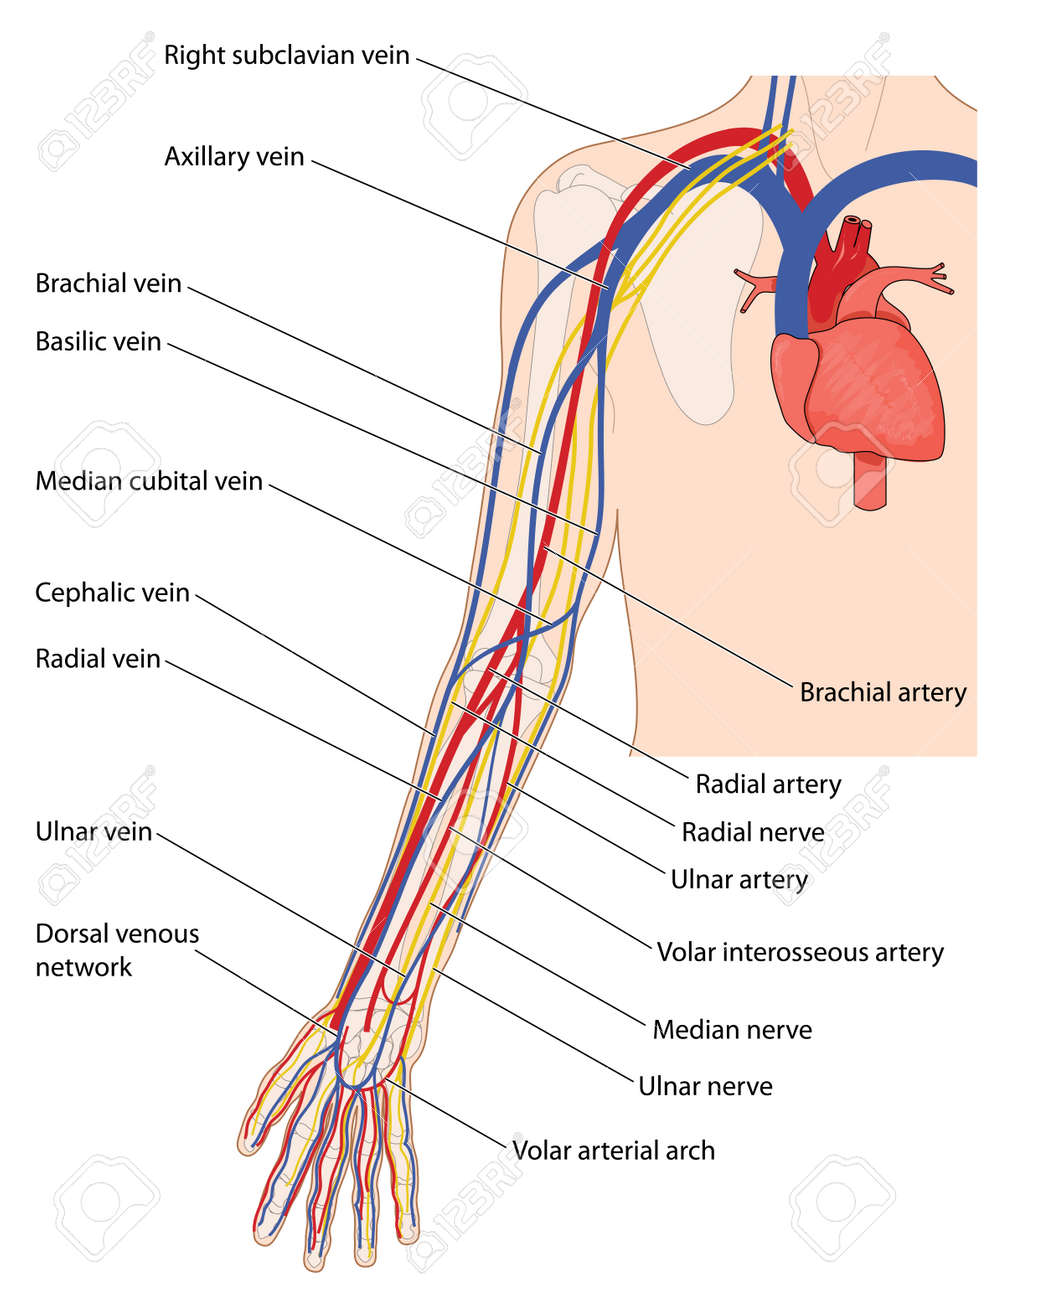 arteries, veins and nerves of the arm, from the heart down to, Cephalic Vein